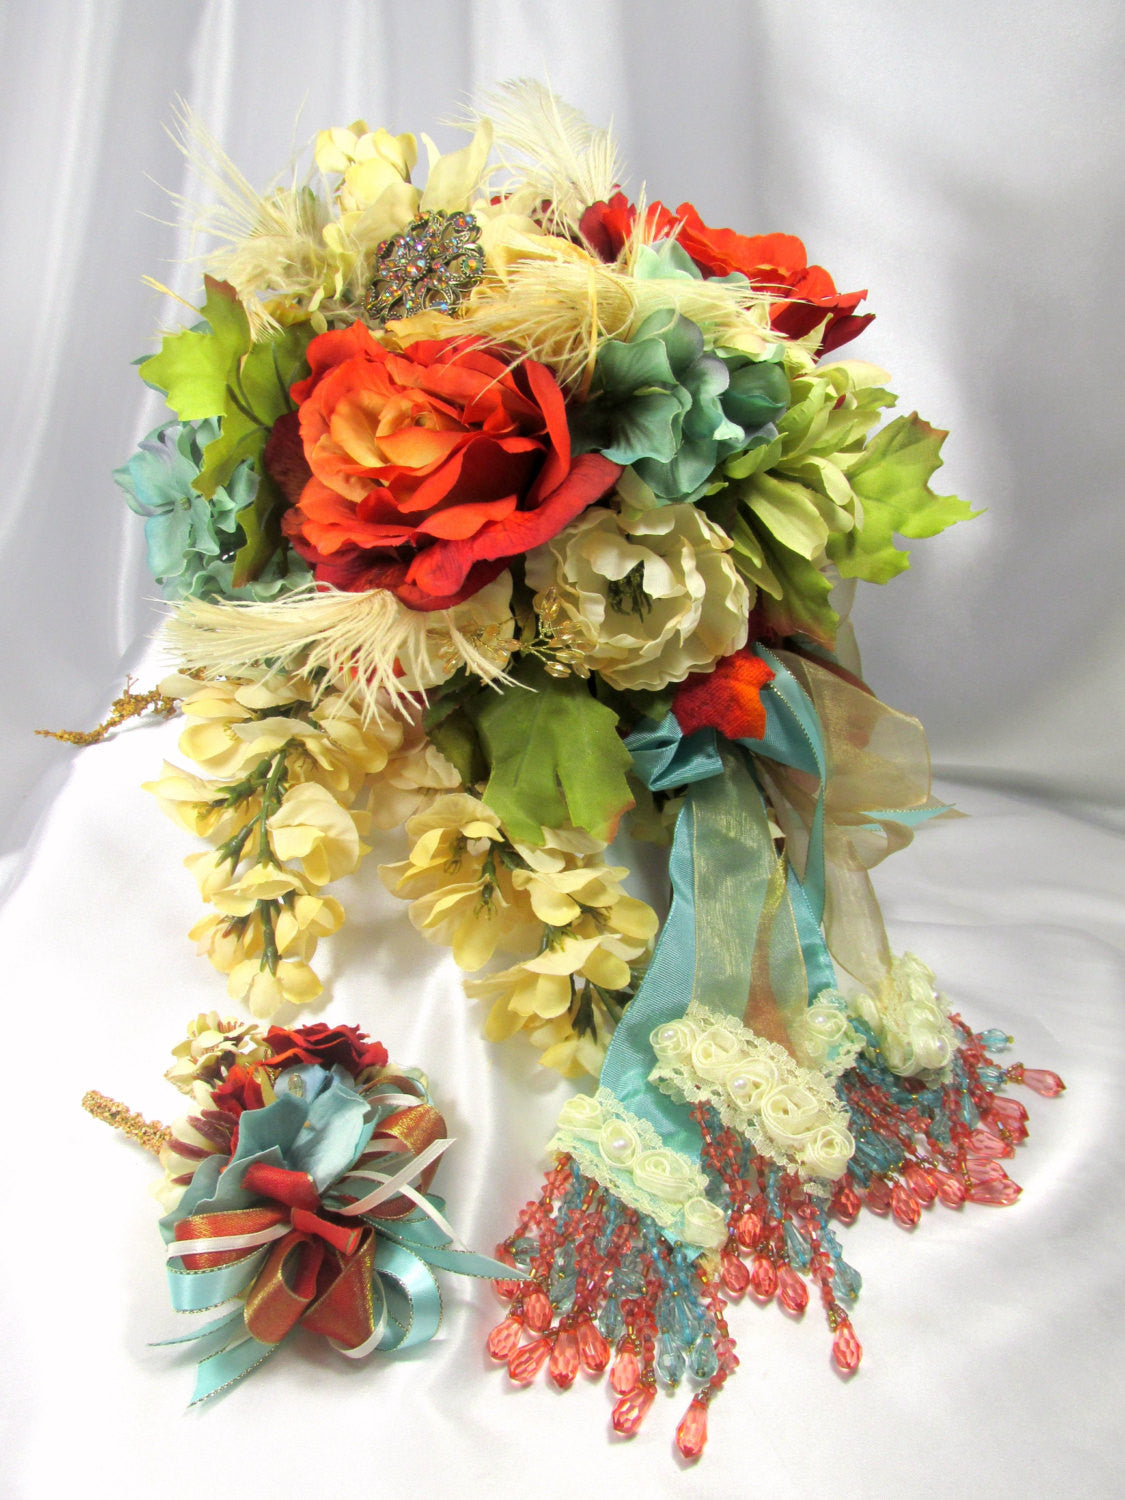 Cascading Bridal Brooch Bouquet and Boutonniere Set in Autumn Seafoam, Rust and Gold - Odyssey Creations